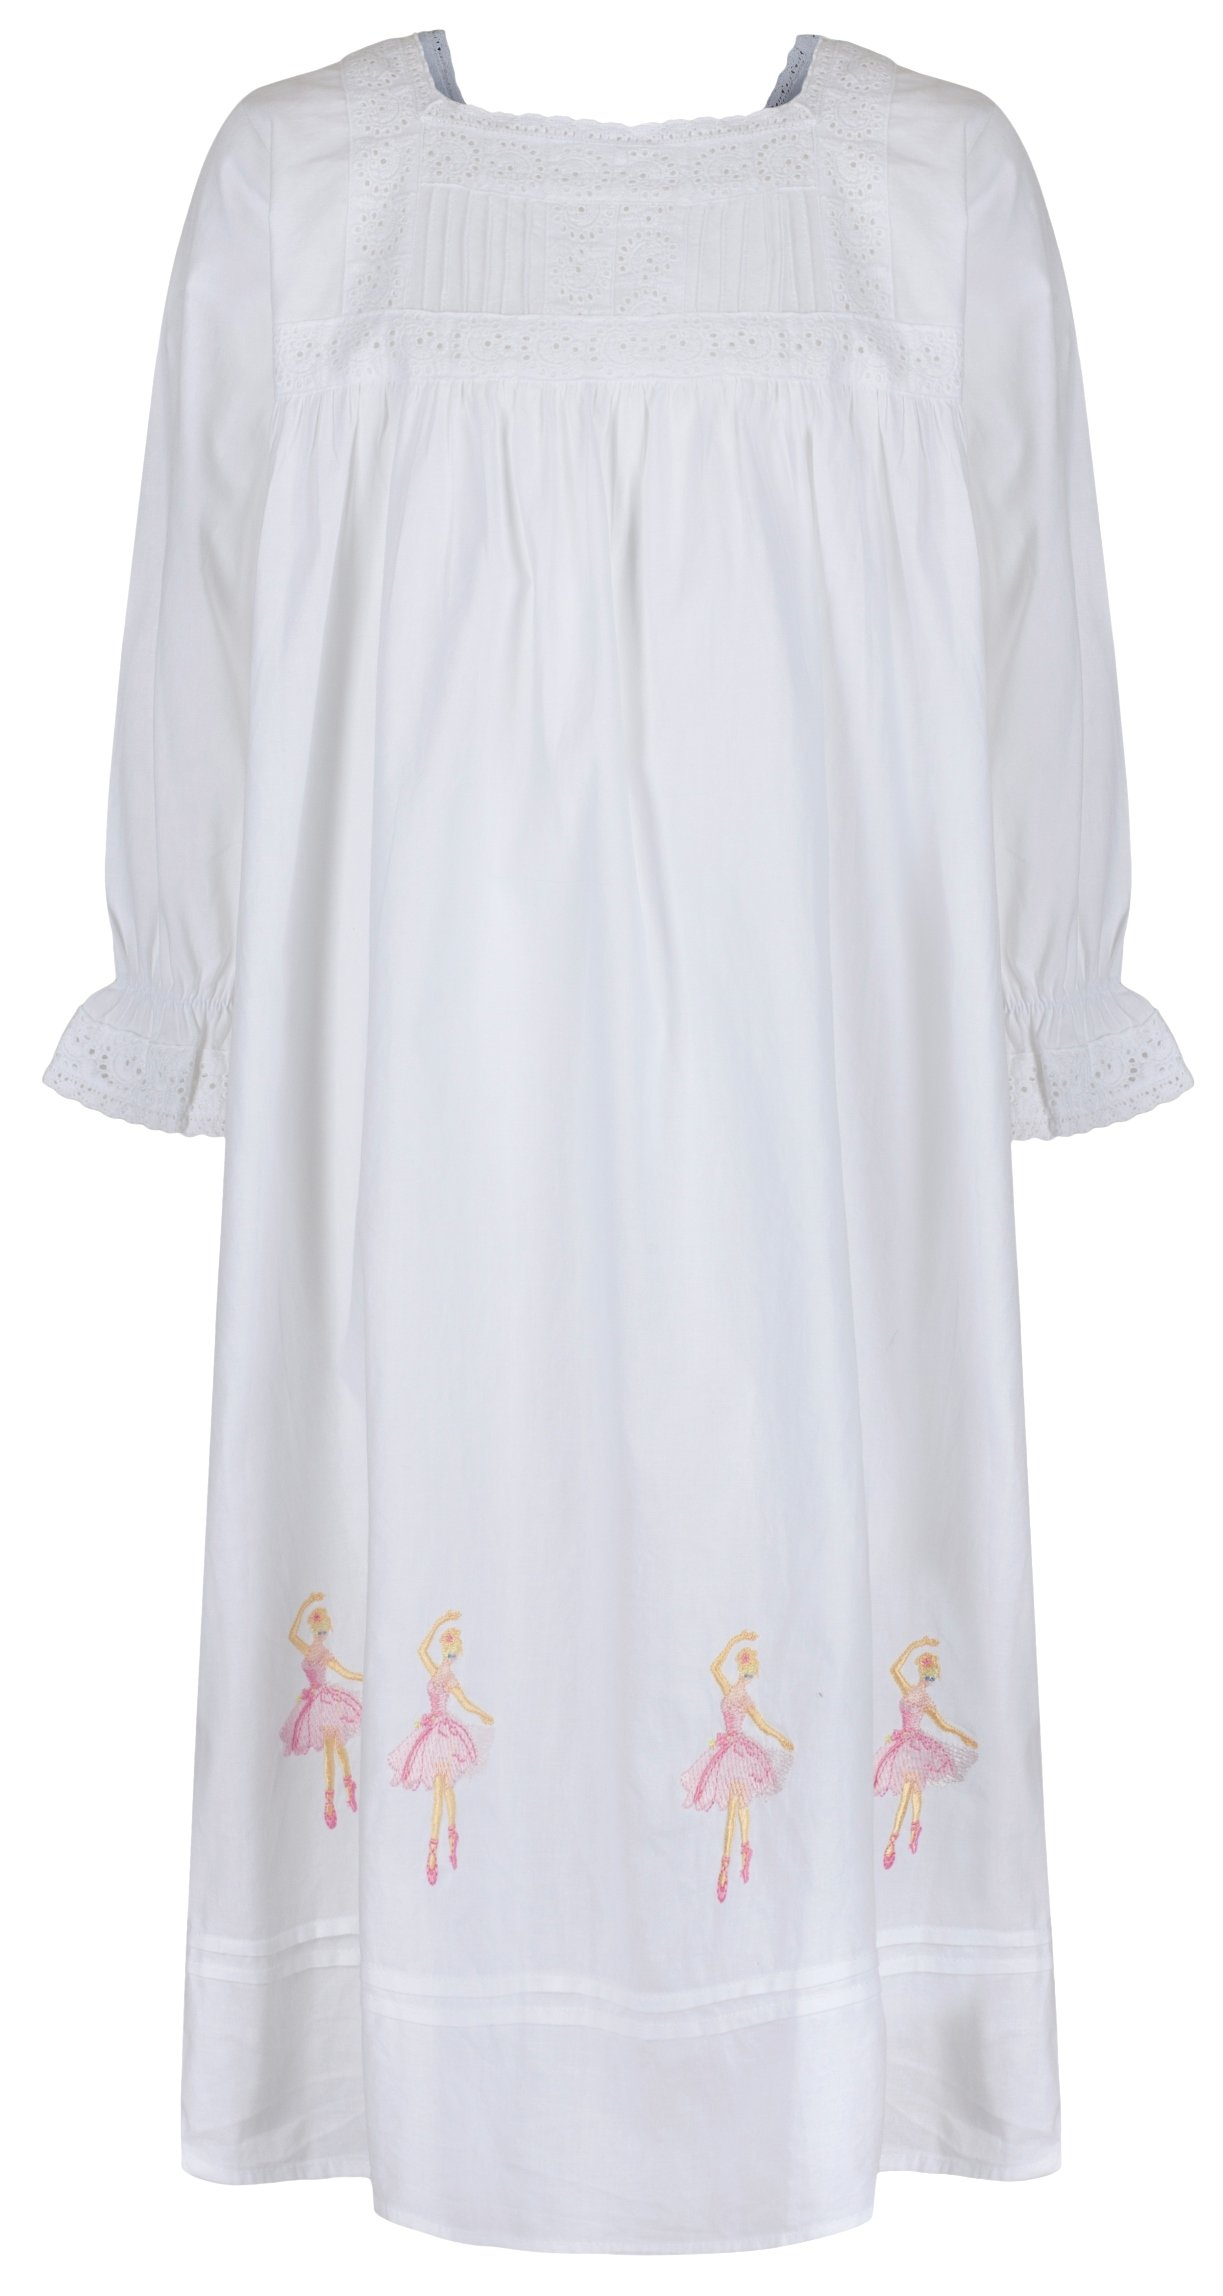 ABClothing Cotton Grils Camicia da Notte Vary Colors 4-14 Anni